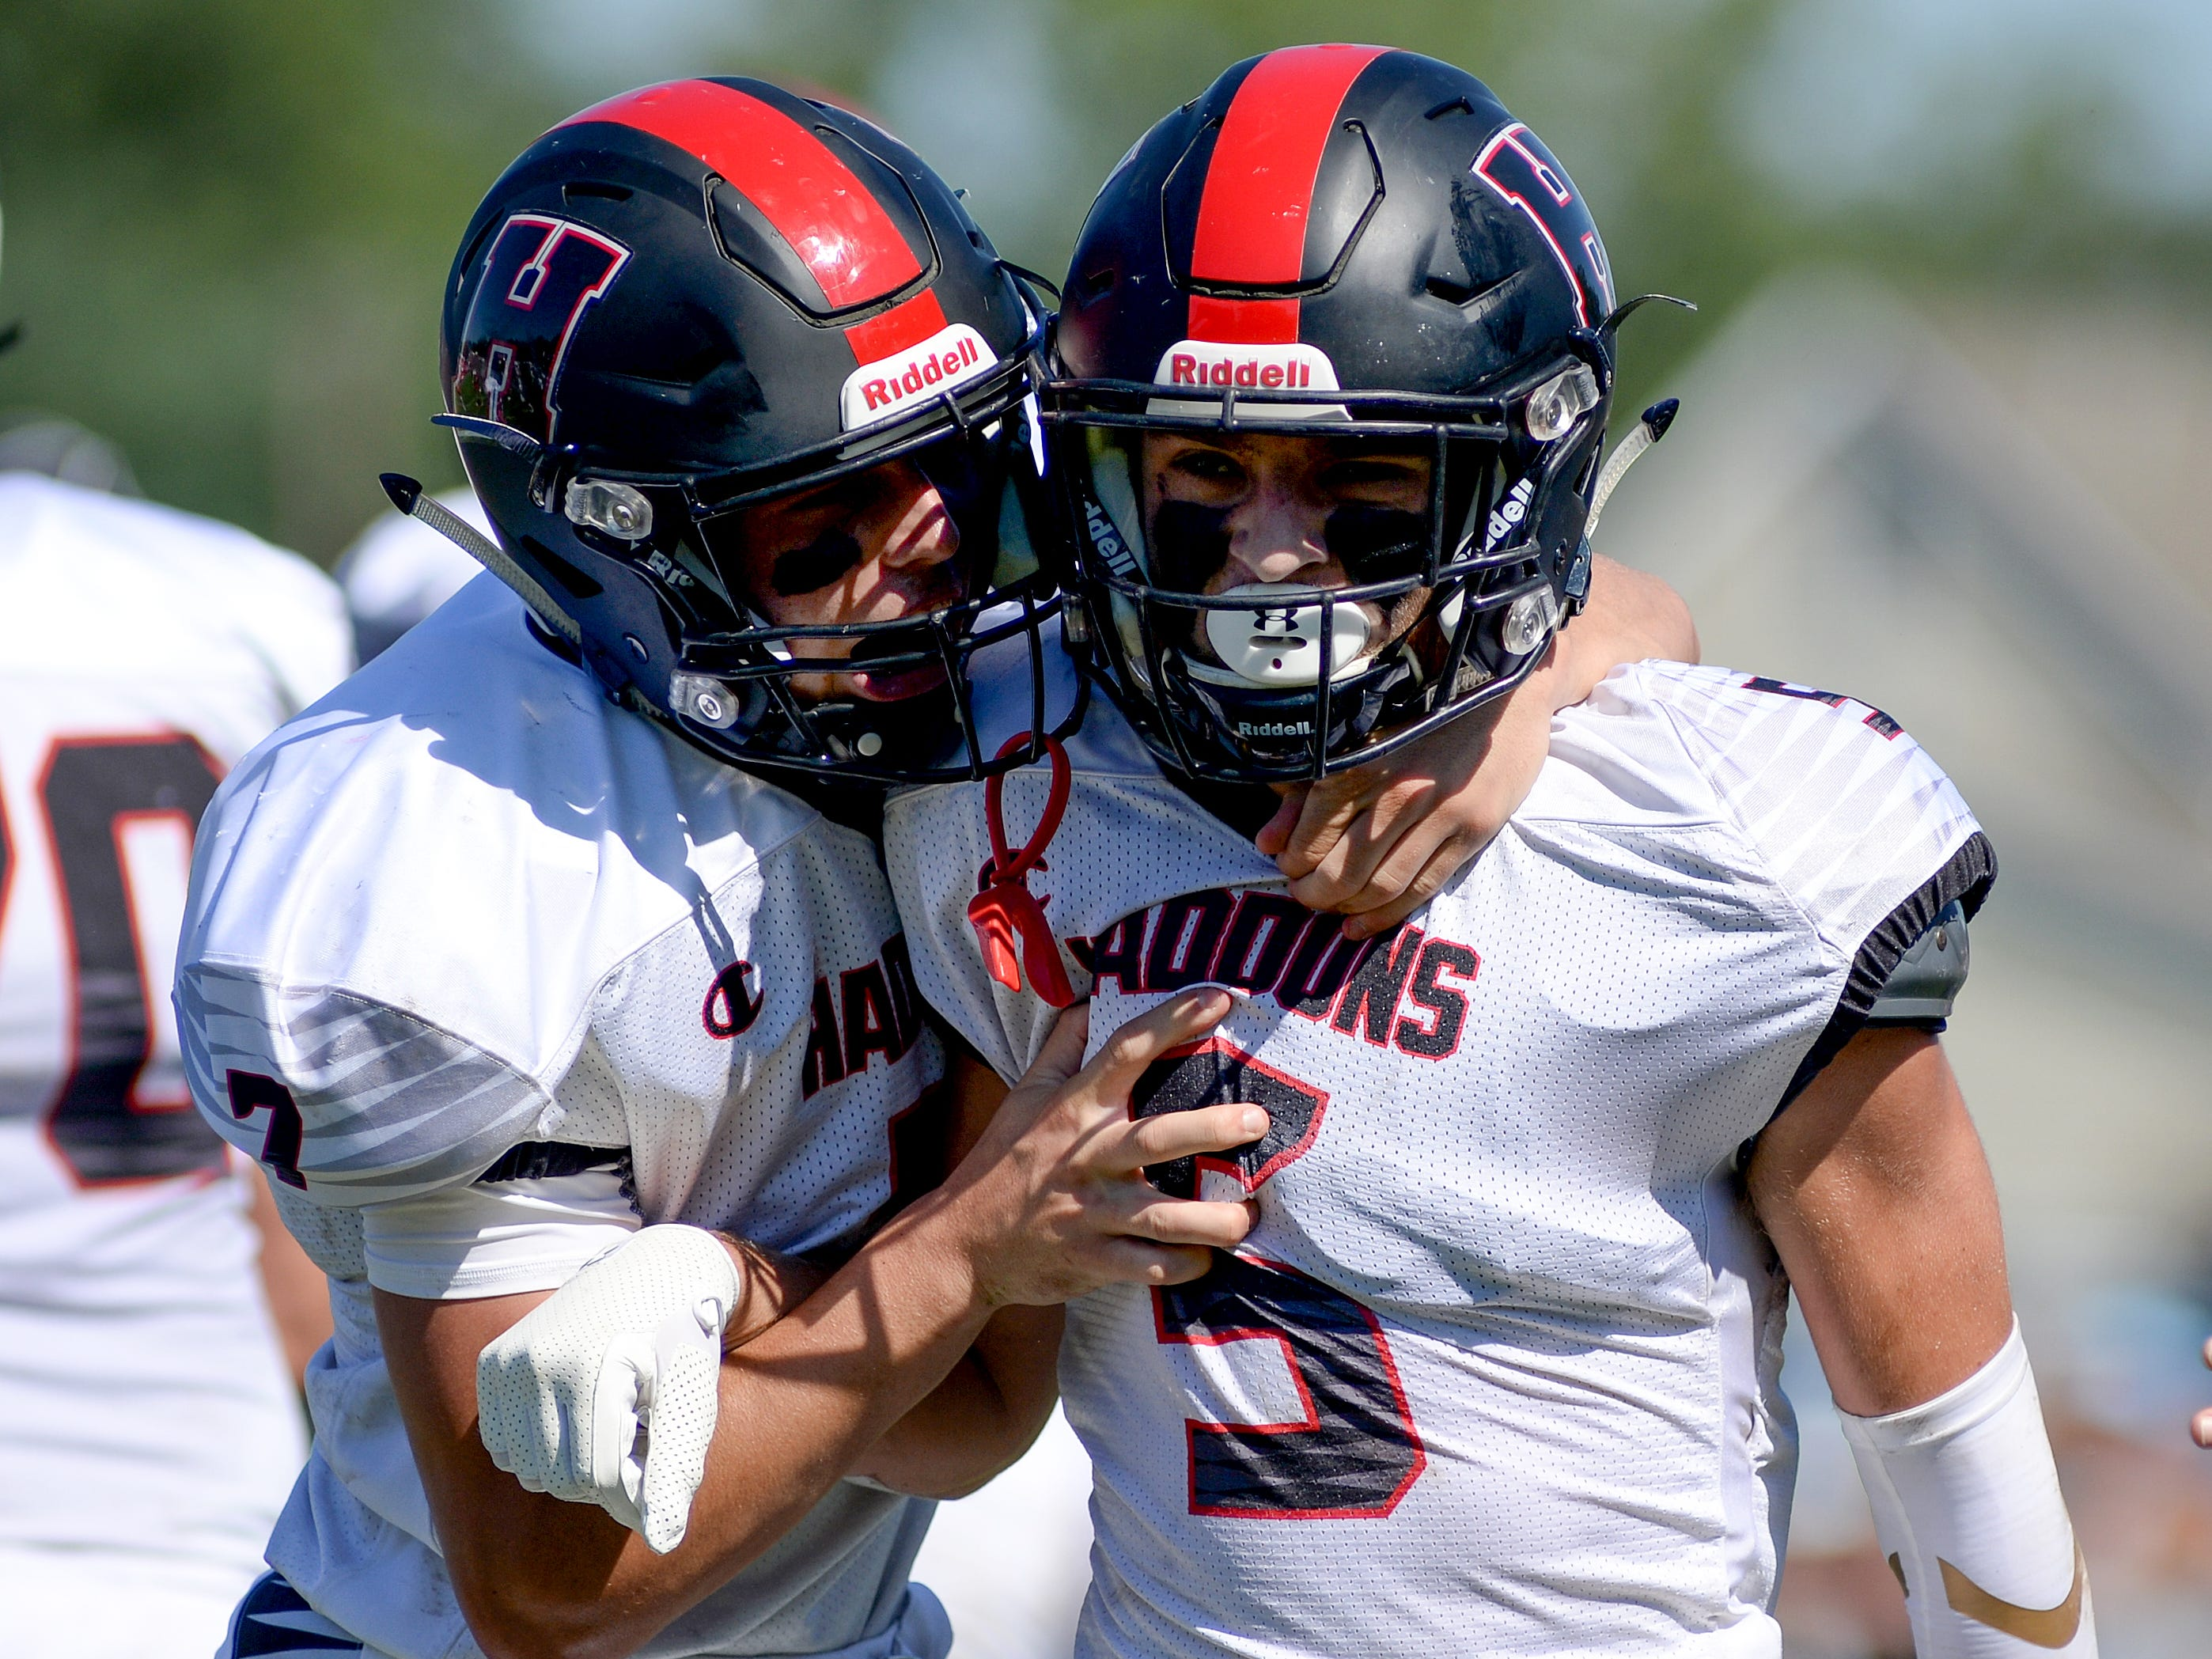 Haddonfield's Johnny Foley (5) gets a hug from Drew Gavranich after scoring a touchdown during the first half of Saturday's game against St. Joseph, Sept. 29, 2018.